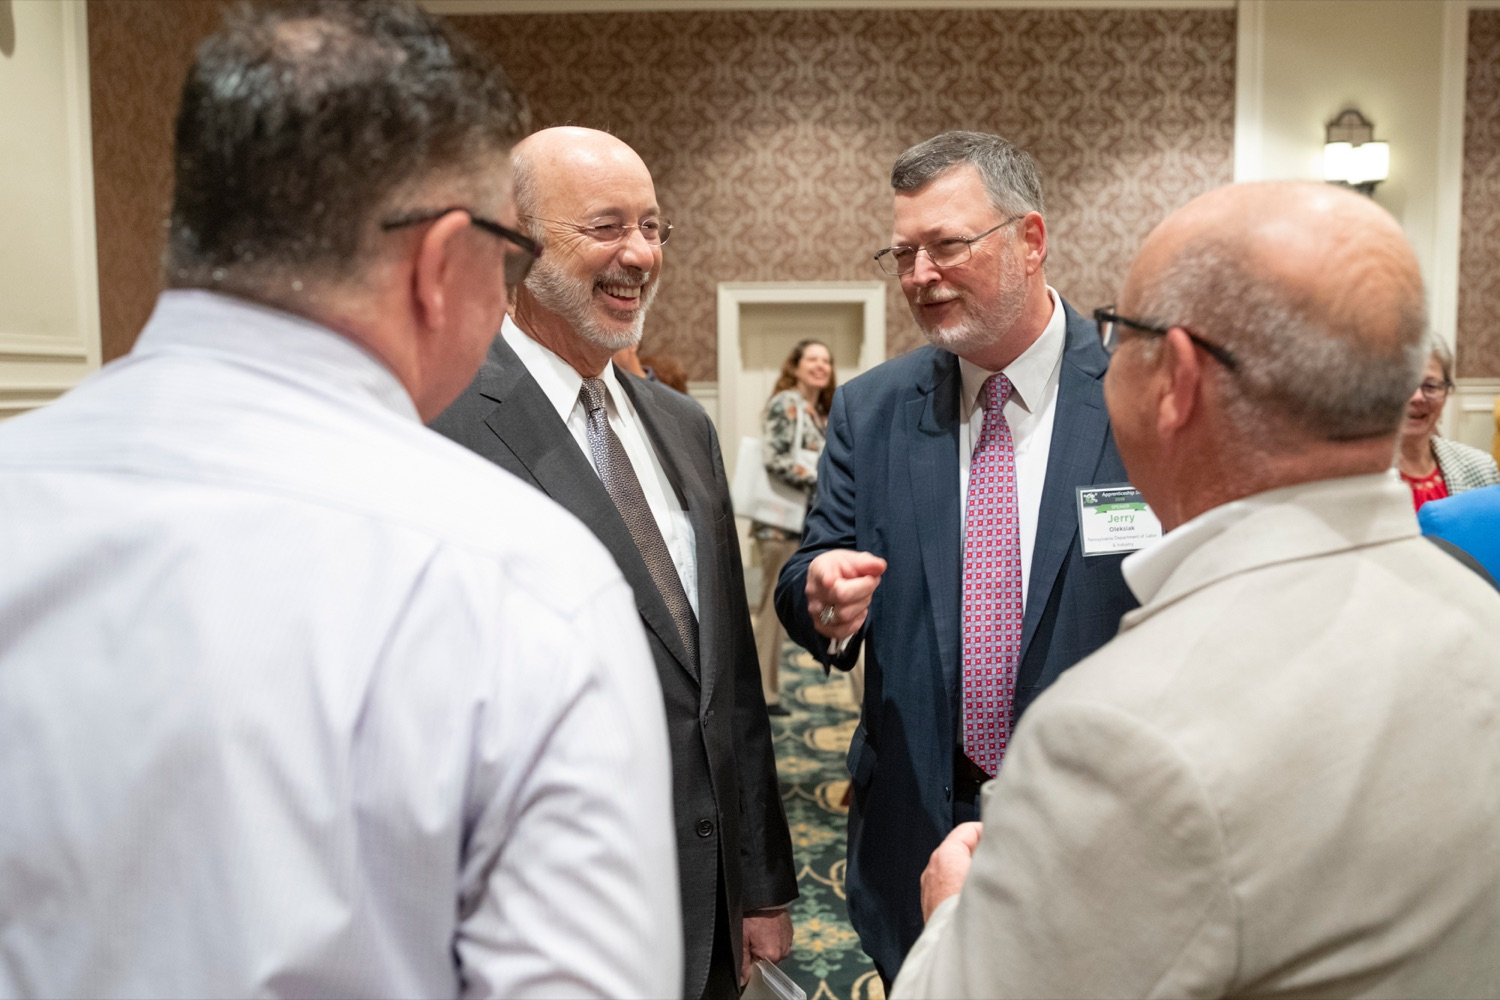 "<a href=""http://filesource.abacast.com/commonwealthofpa/photo/17520_LandI_Apprenticeships_NK_001.JPG"" target=""_blank"">⇣ Download Photo<br></a>Pennsylvania Governor Tom Wolf smiles with Jerry Oleksiak, secretary for Pennsylvania department of Labor and Industry, during the 2019 Pennsylvania Apprenticeship Summit at Hershey Lodge on Thursday, October 31, 2019."